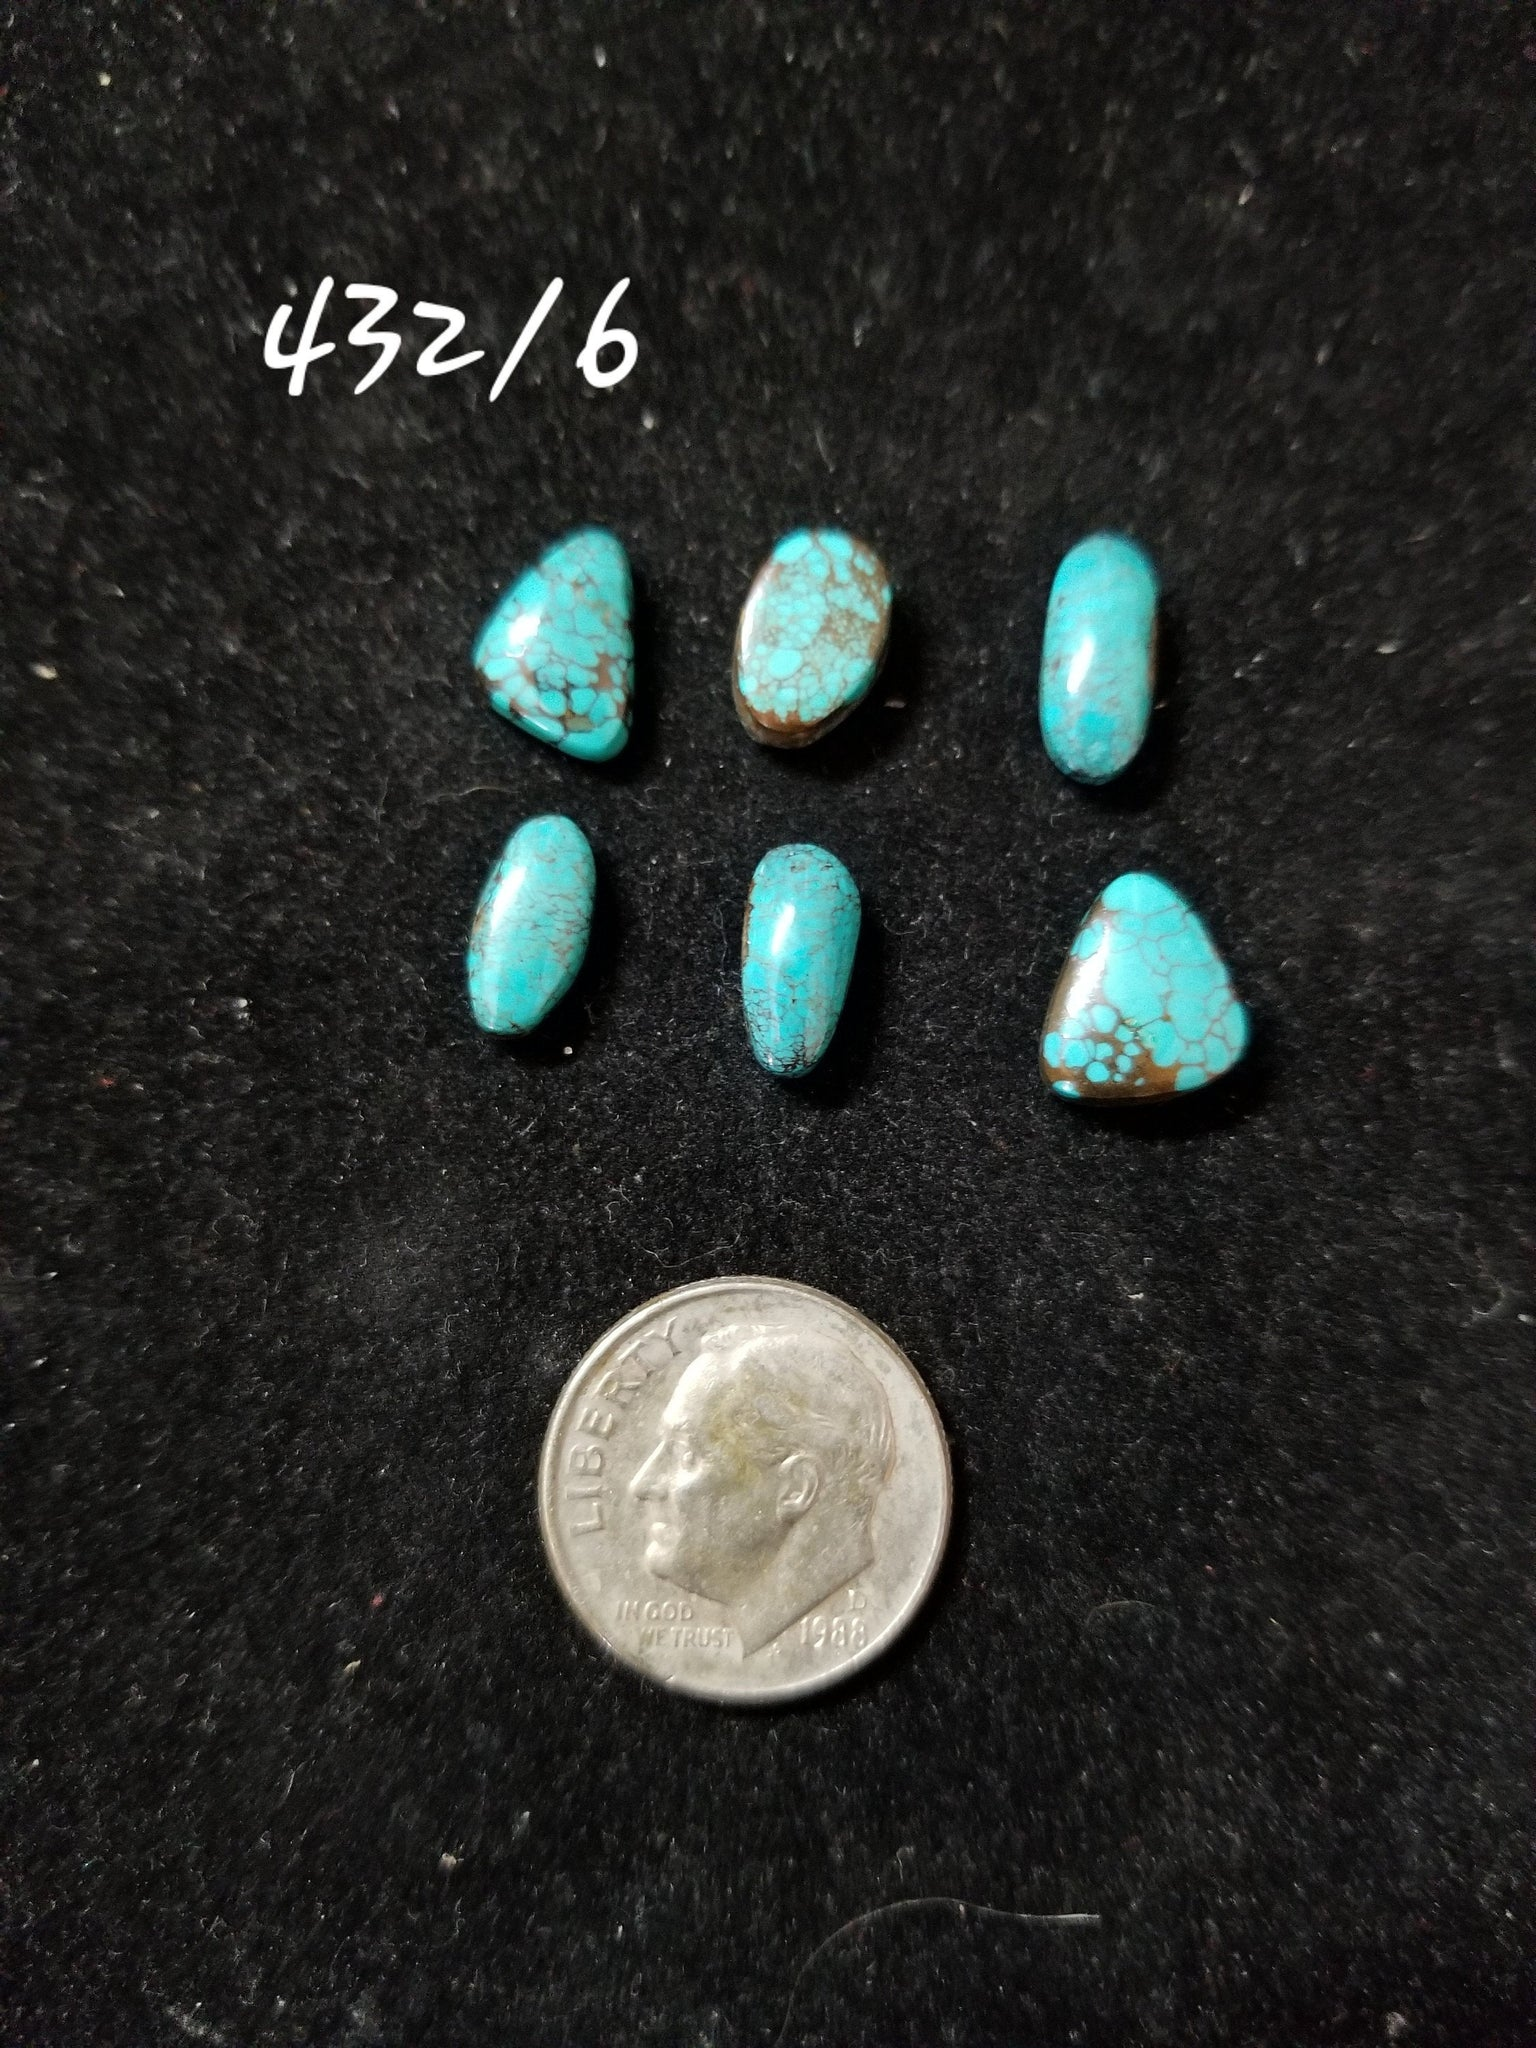 50c. Hubei, Cloud Mountain, Kingman heart, Mixed mines turquoise - Red Dirt Diva